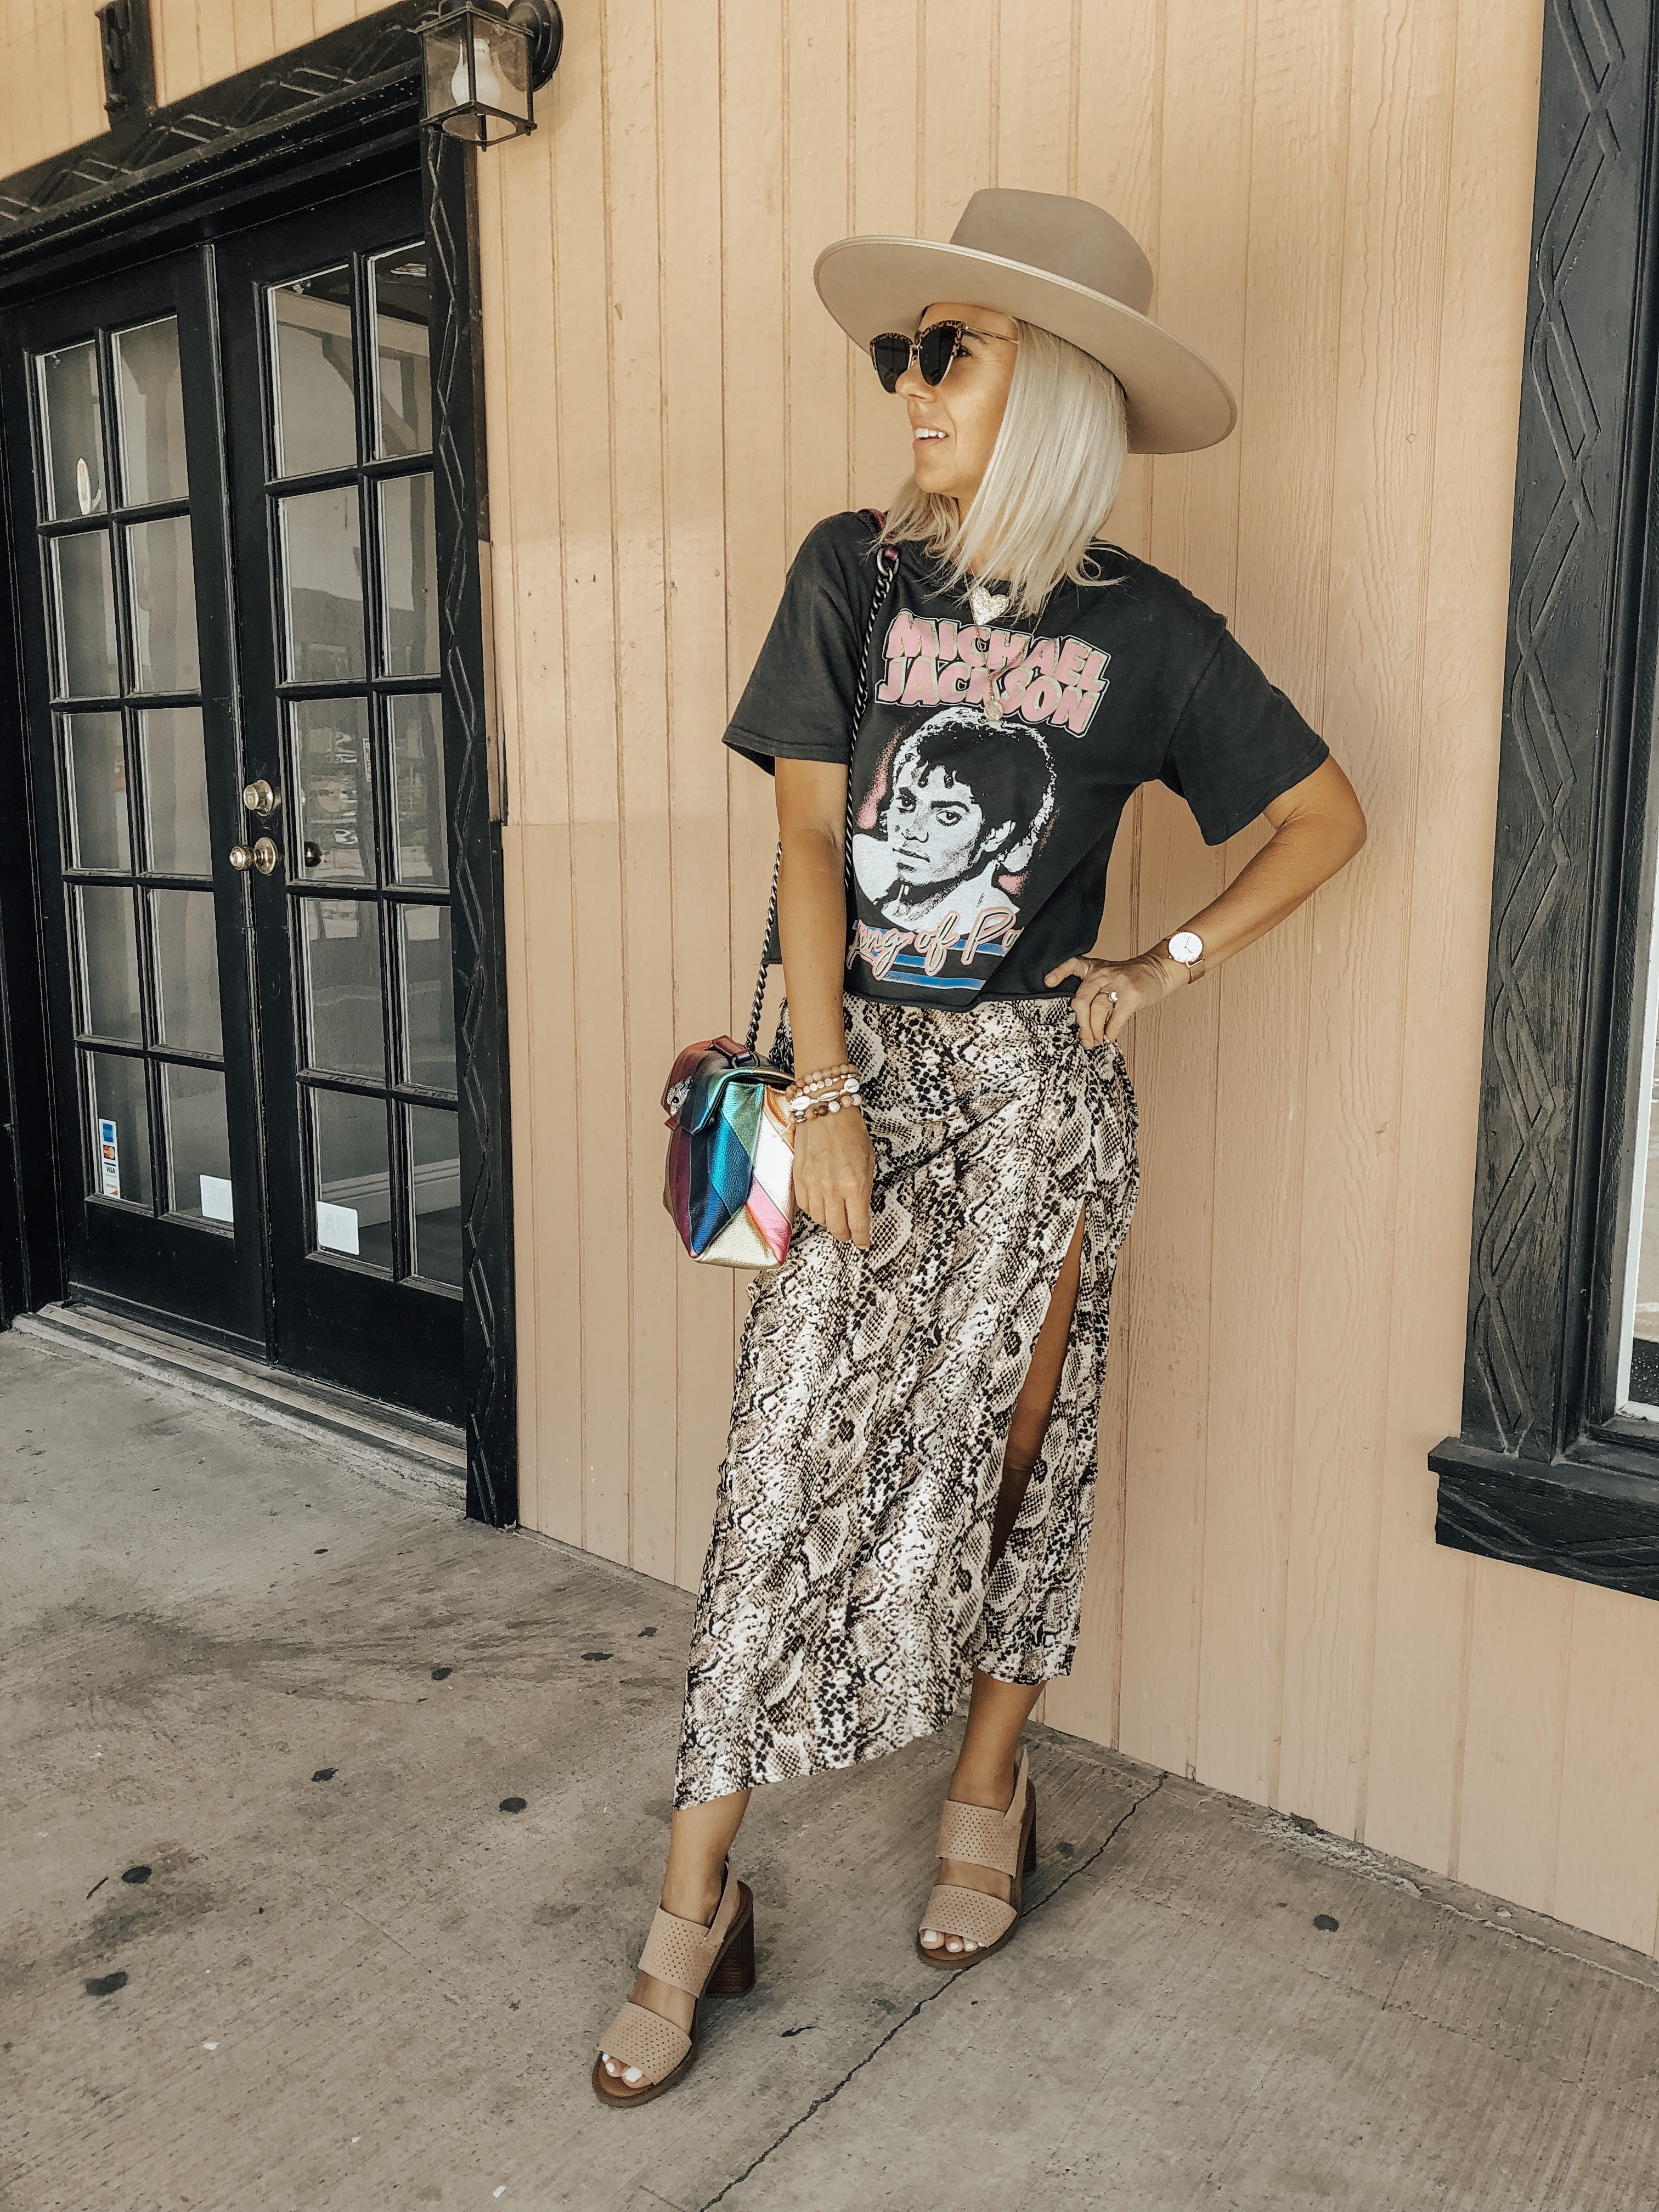 ALL ABOUT ANIMAL PRINT- Jaclyn De Leon Style= The animal print trend is everywhere right now and now heading into the Fall it's not going anywhere. Leopard print, cheetah, zebra and more on clothing, accessories and shoes.